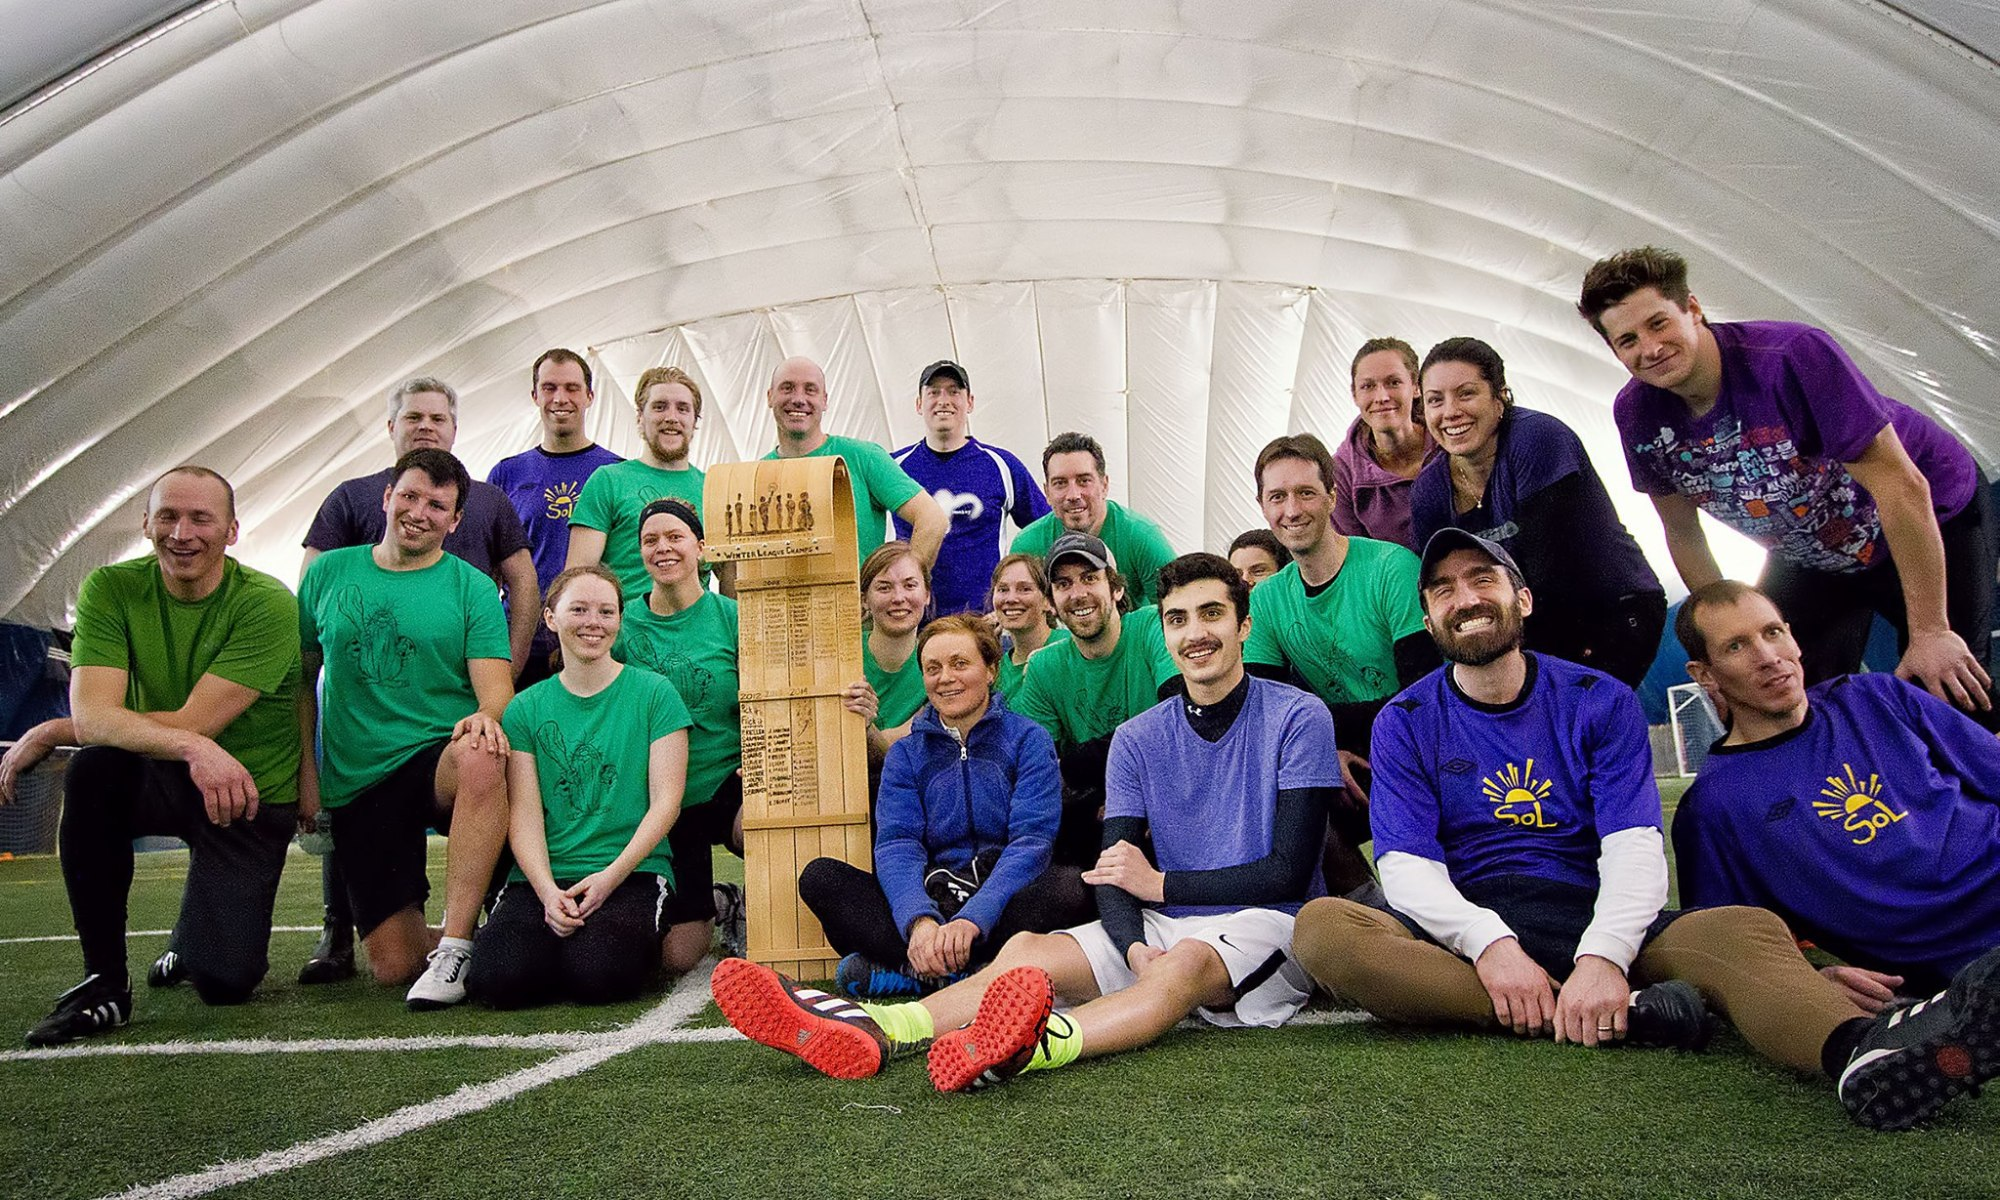 frisbee-finals-team-photo